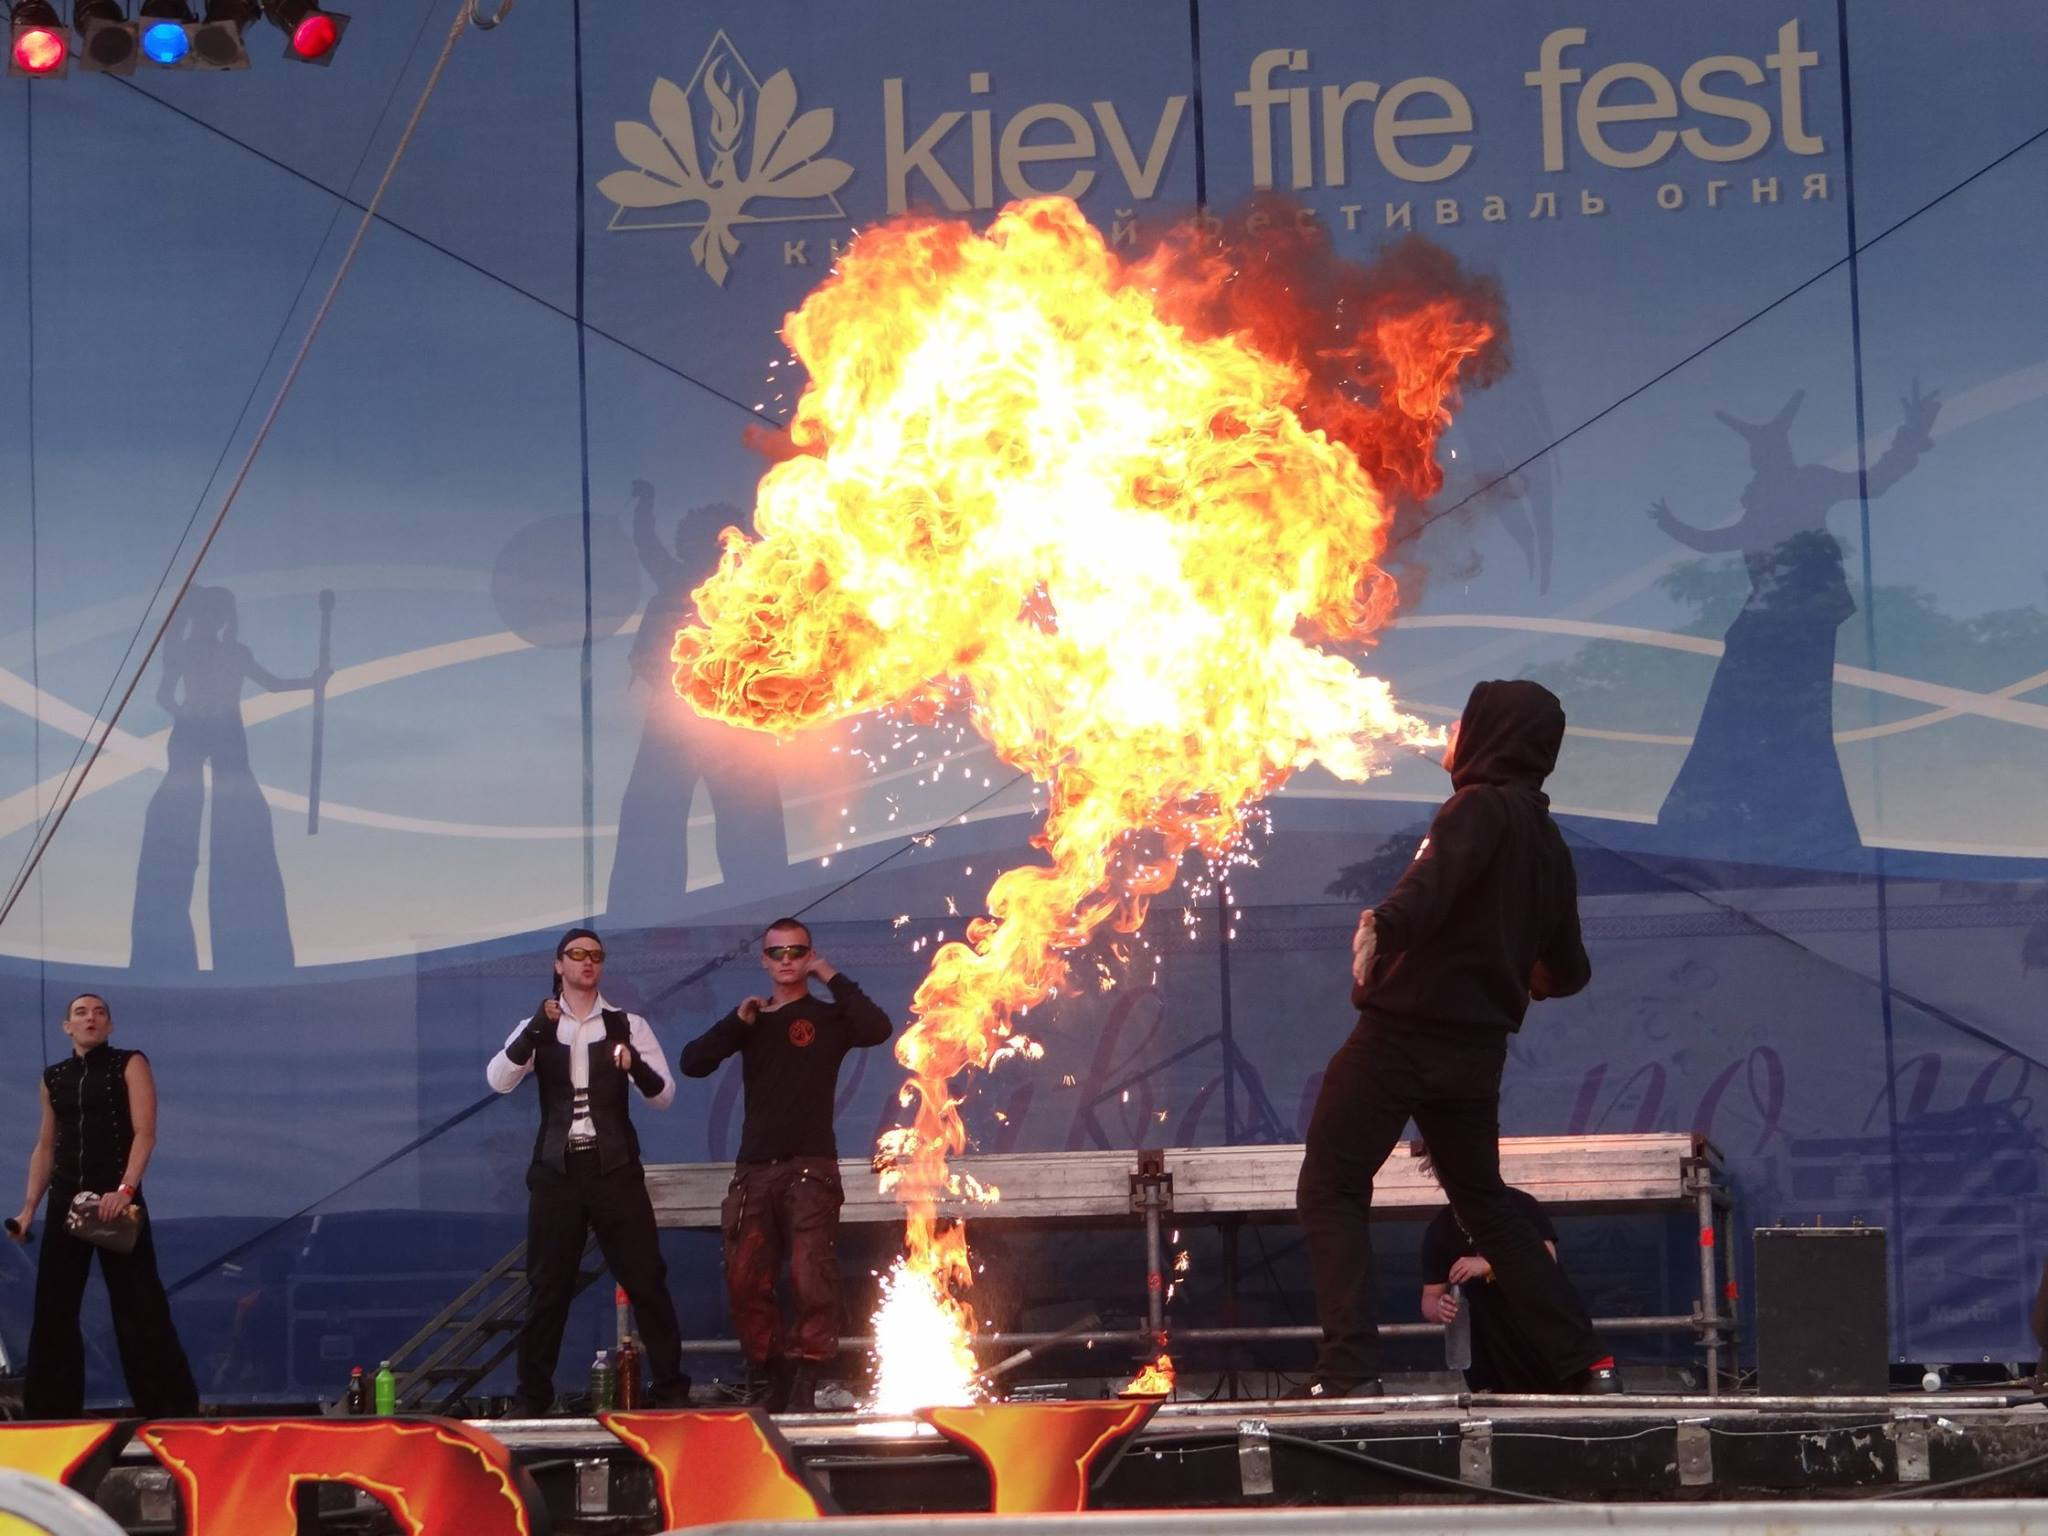 Quarante Quatre cracheur de feu battle kff 2016